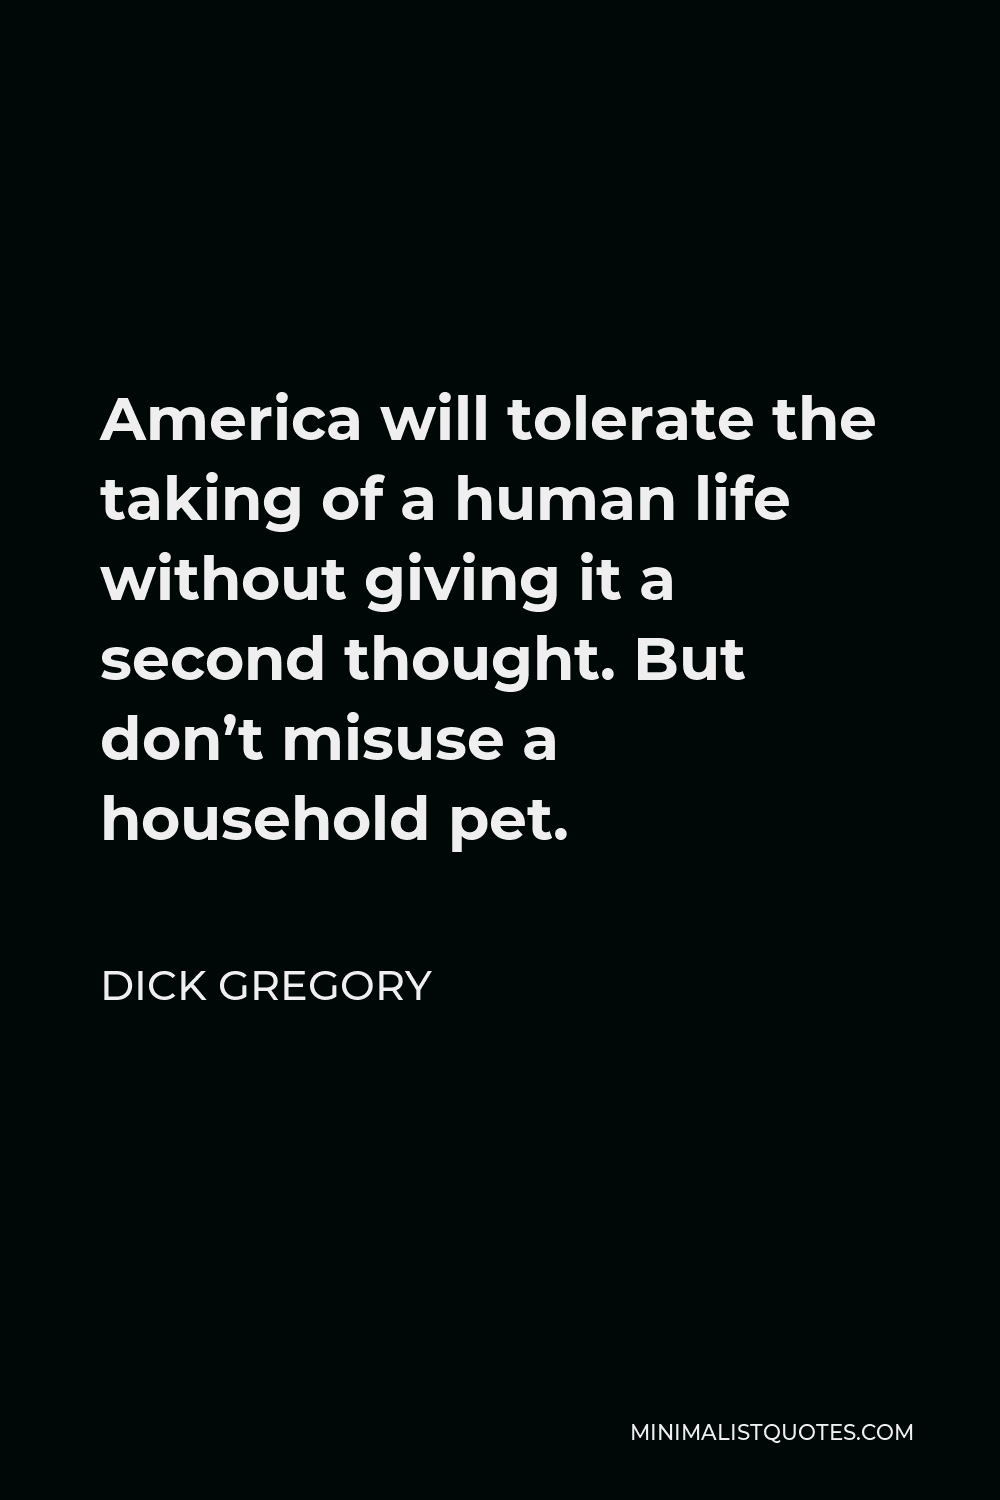 Dick Gregory Quote - America will tolerate the taking of a human life without giving it a second thought. But don't misuse a household pet.